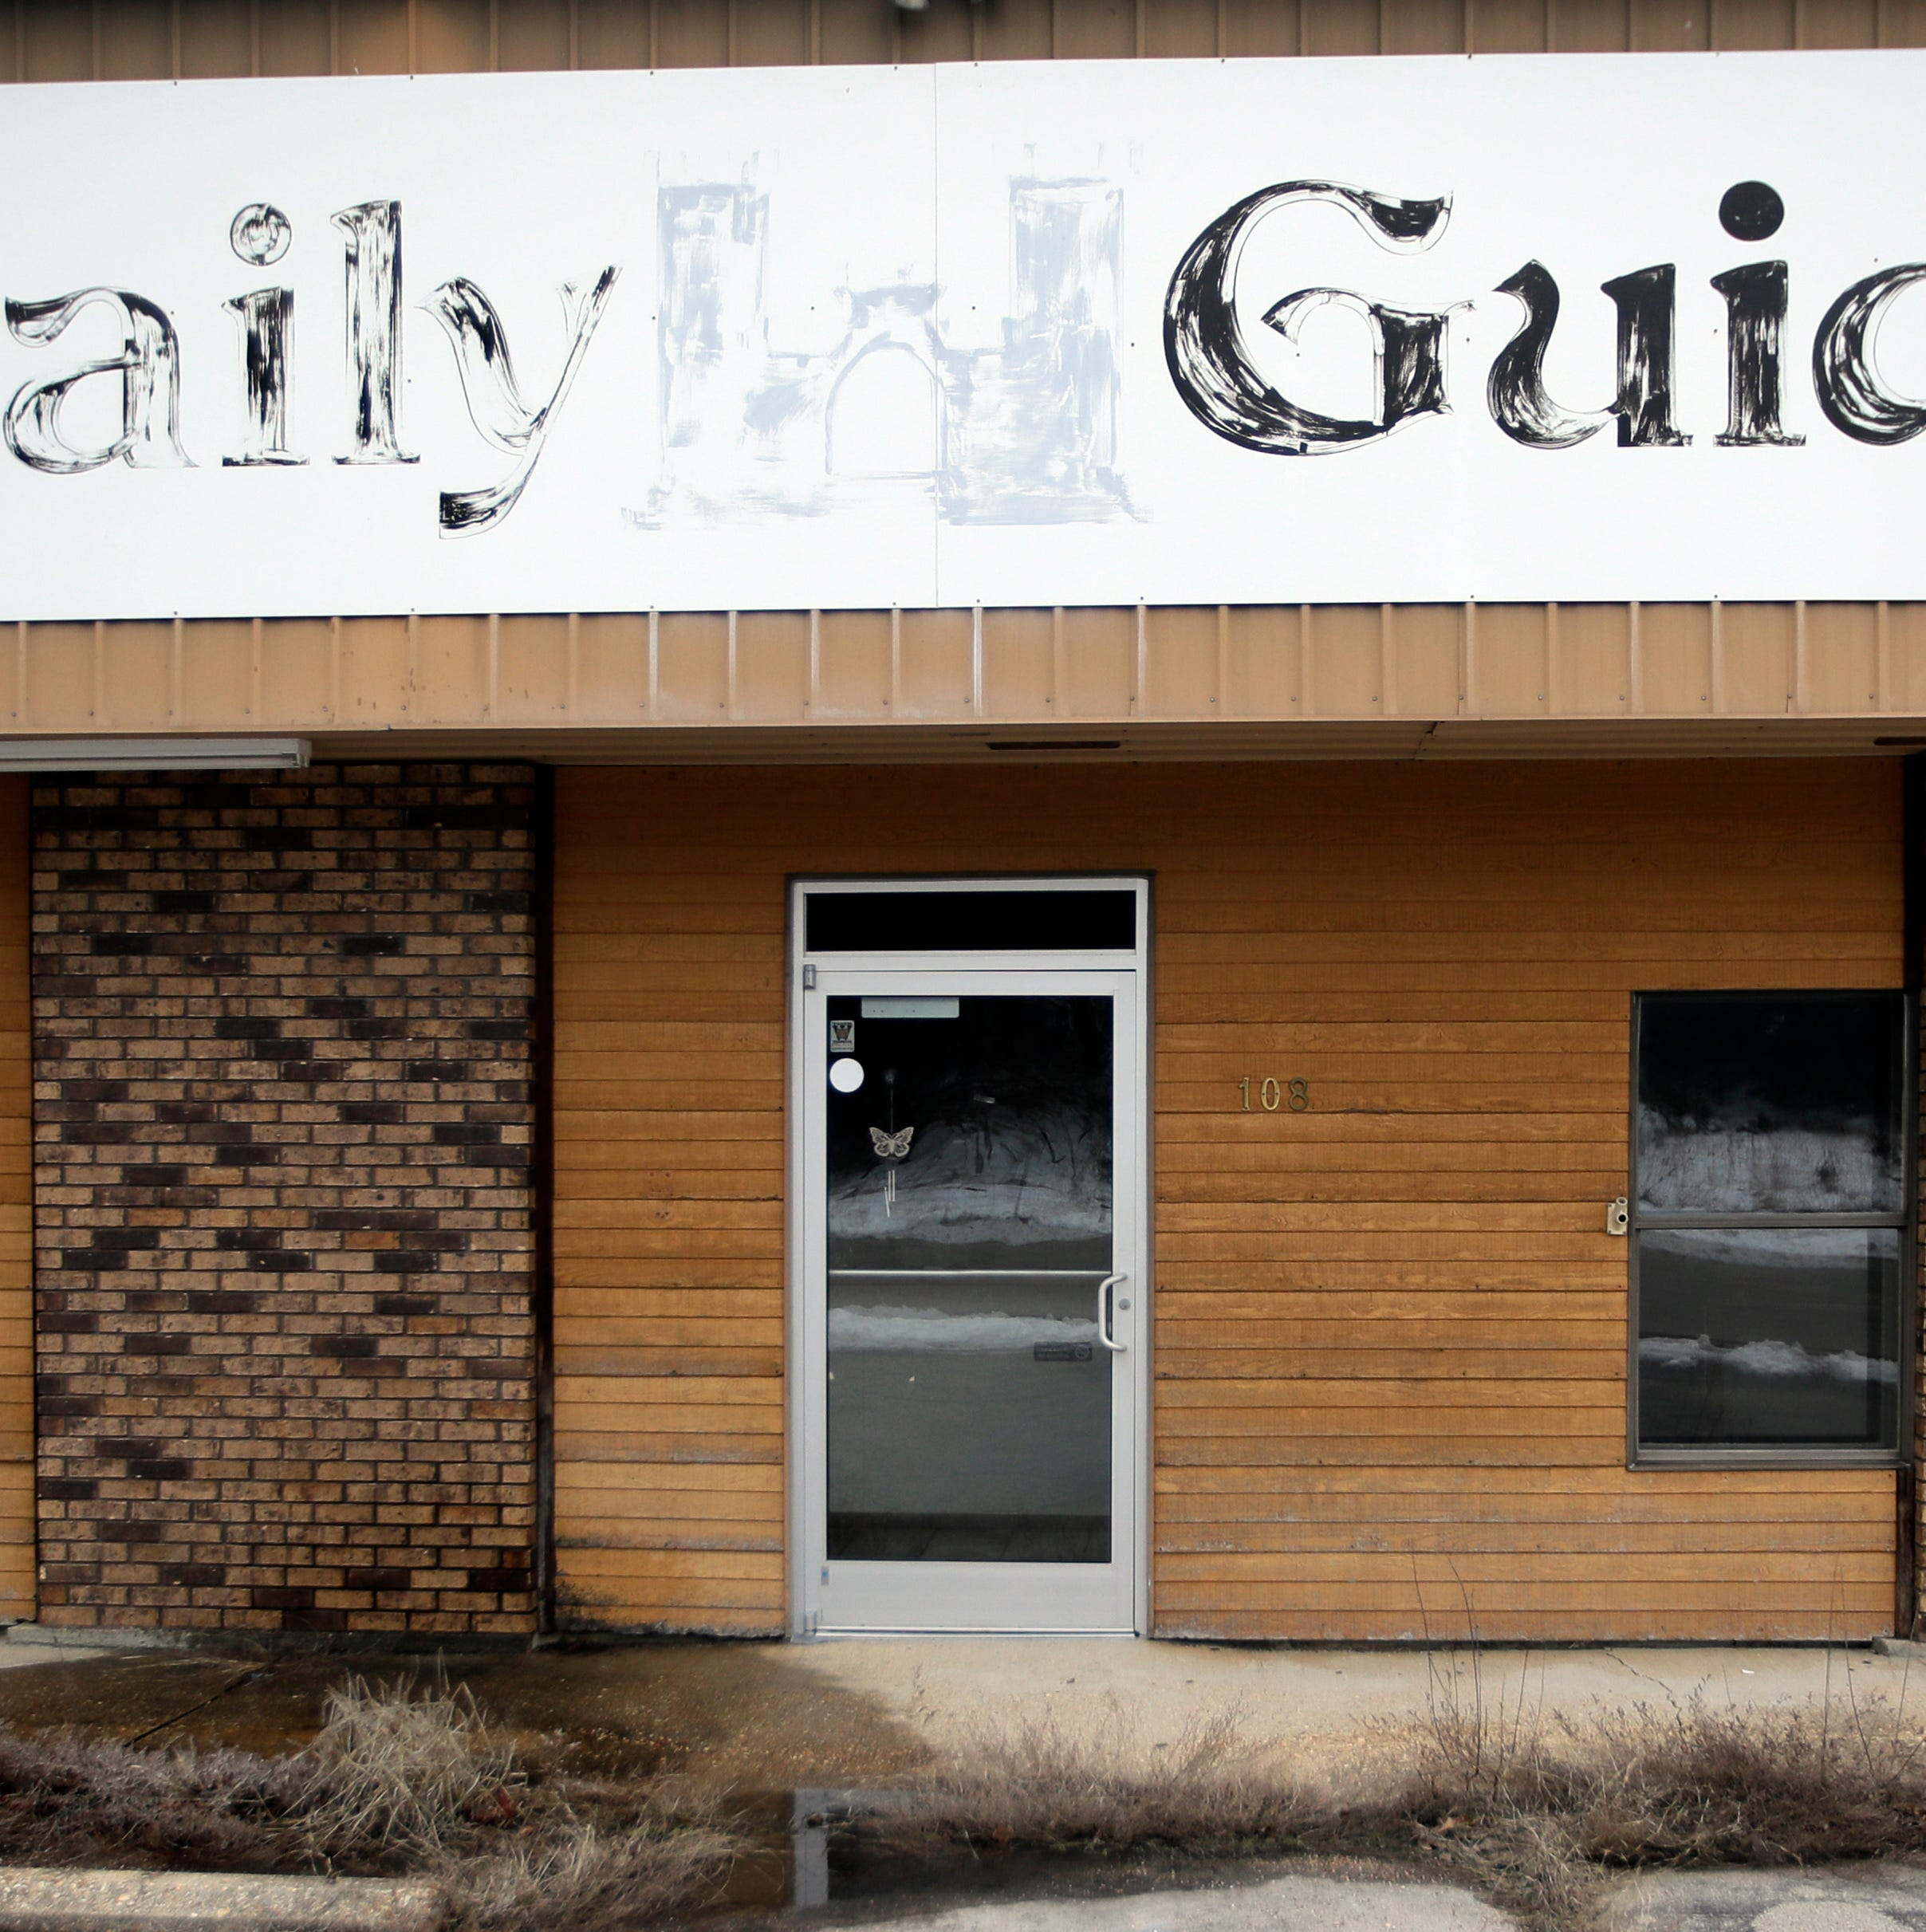 Decline in readers, ads leads hundreds of newspapers to fold